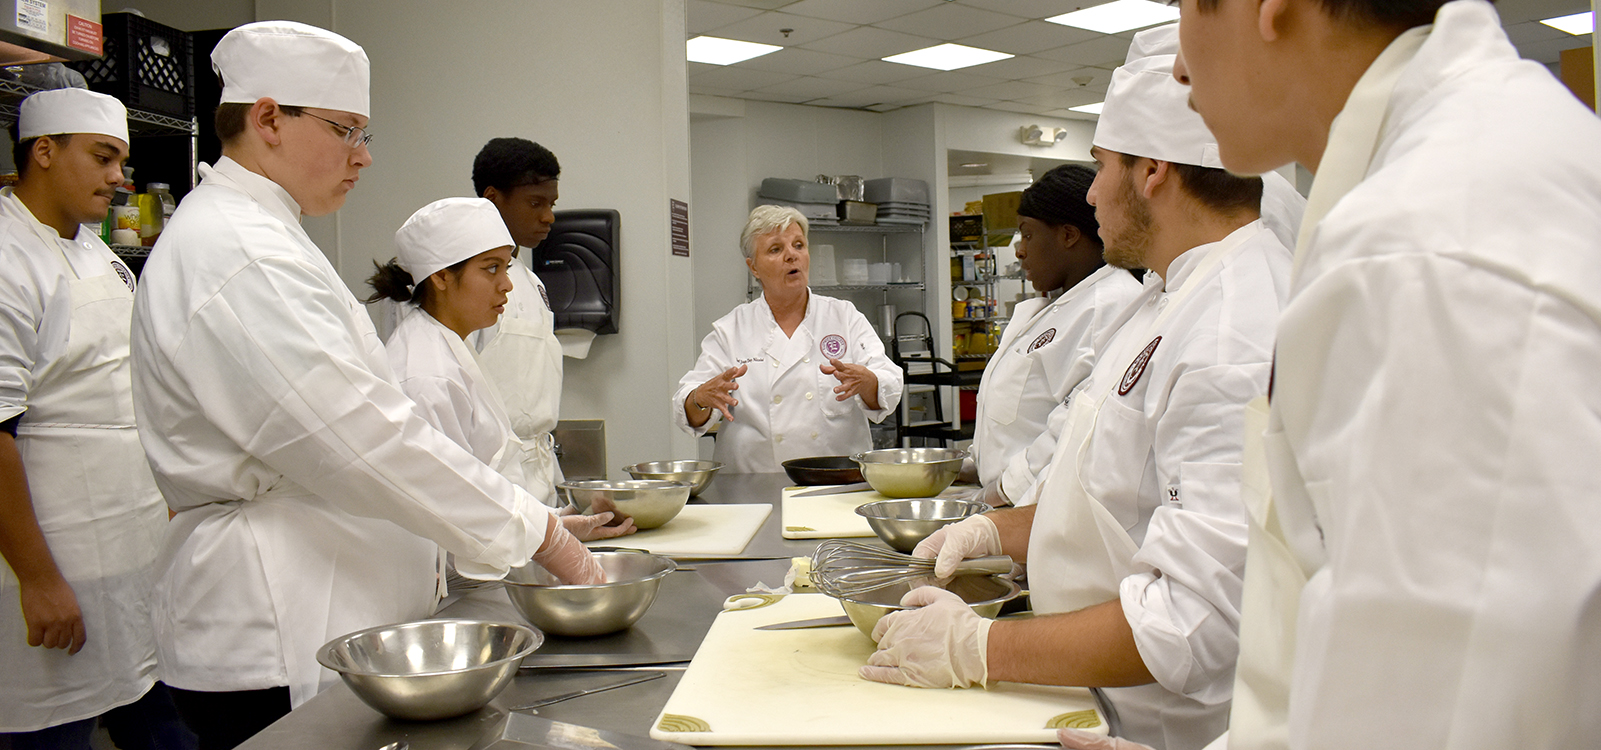 Culinary Arts Associates students stand around table full of kitchen tools listening to instructor